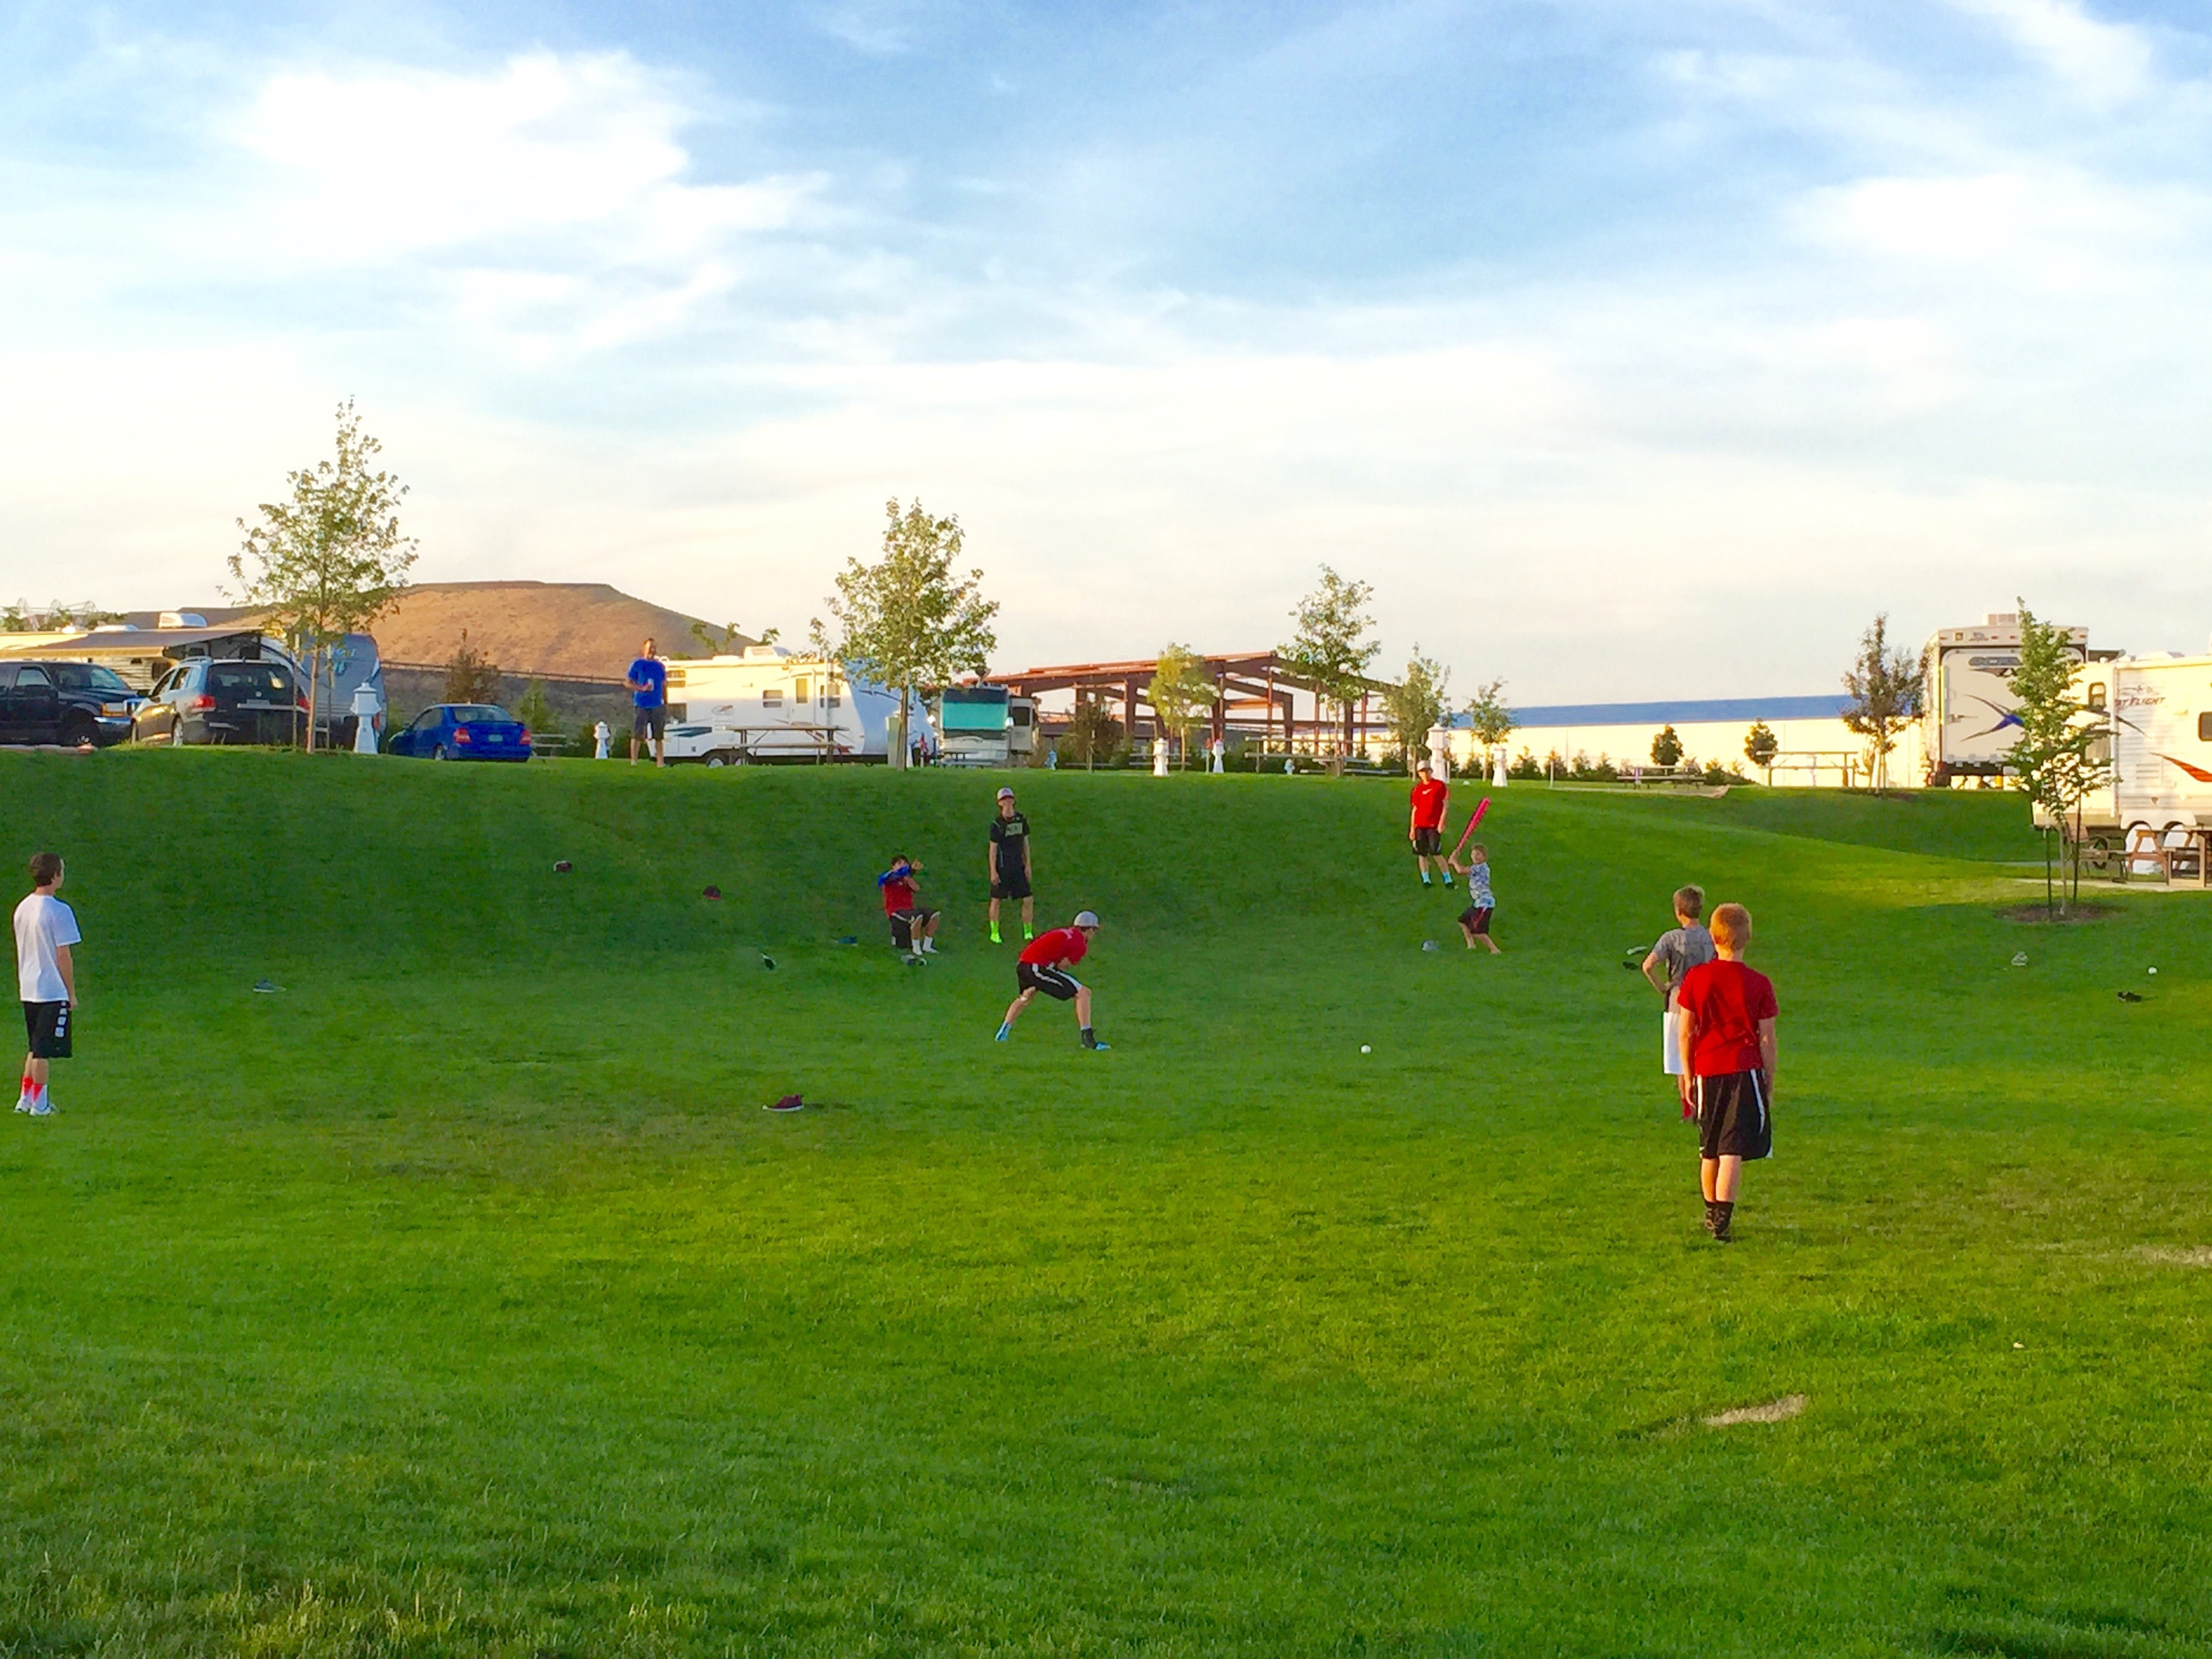 Columbia Sun RV Resort - games on field